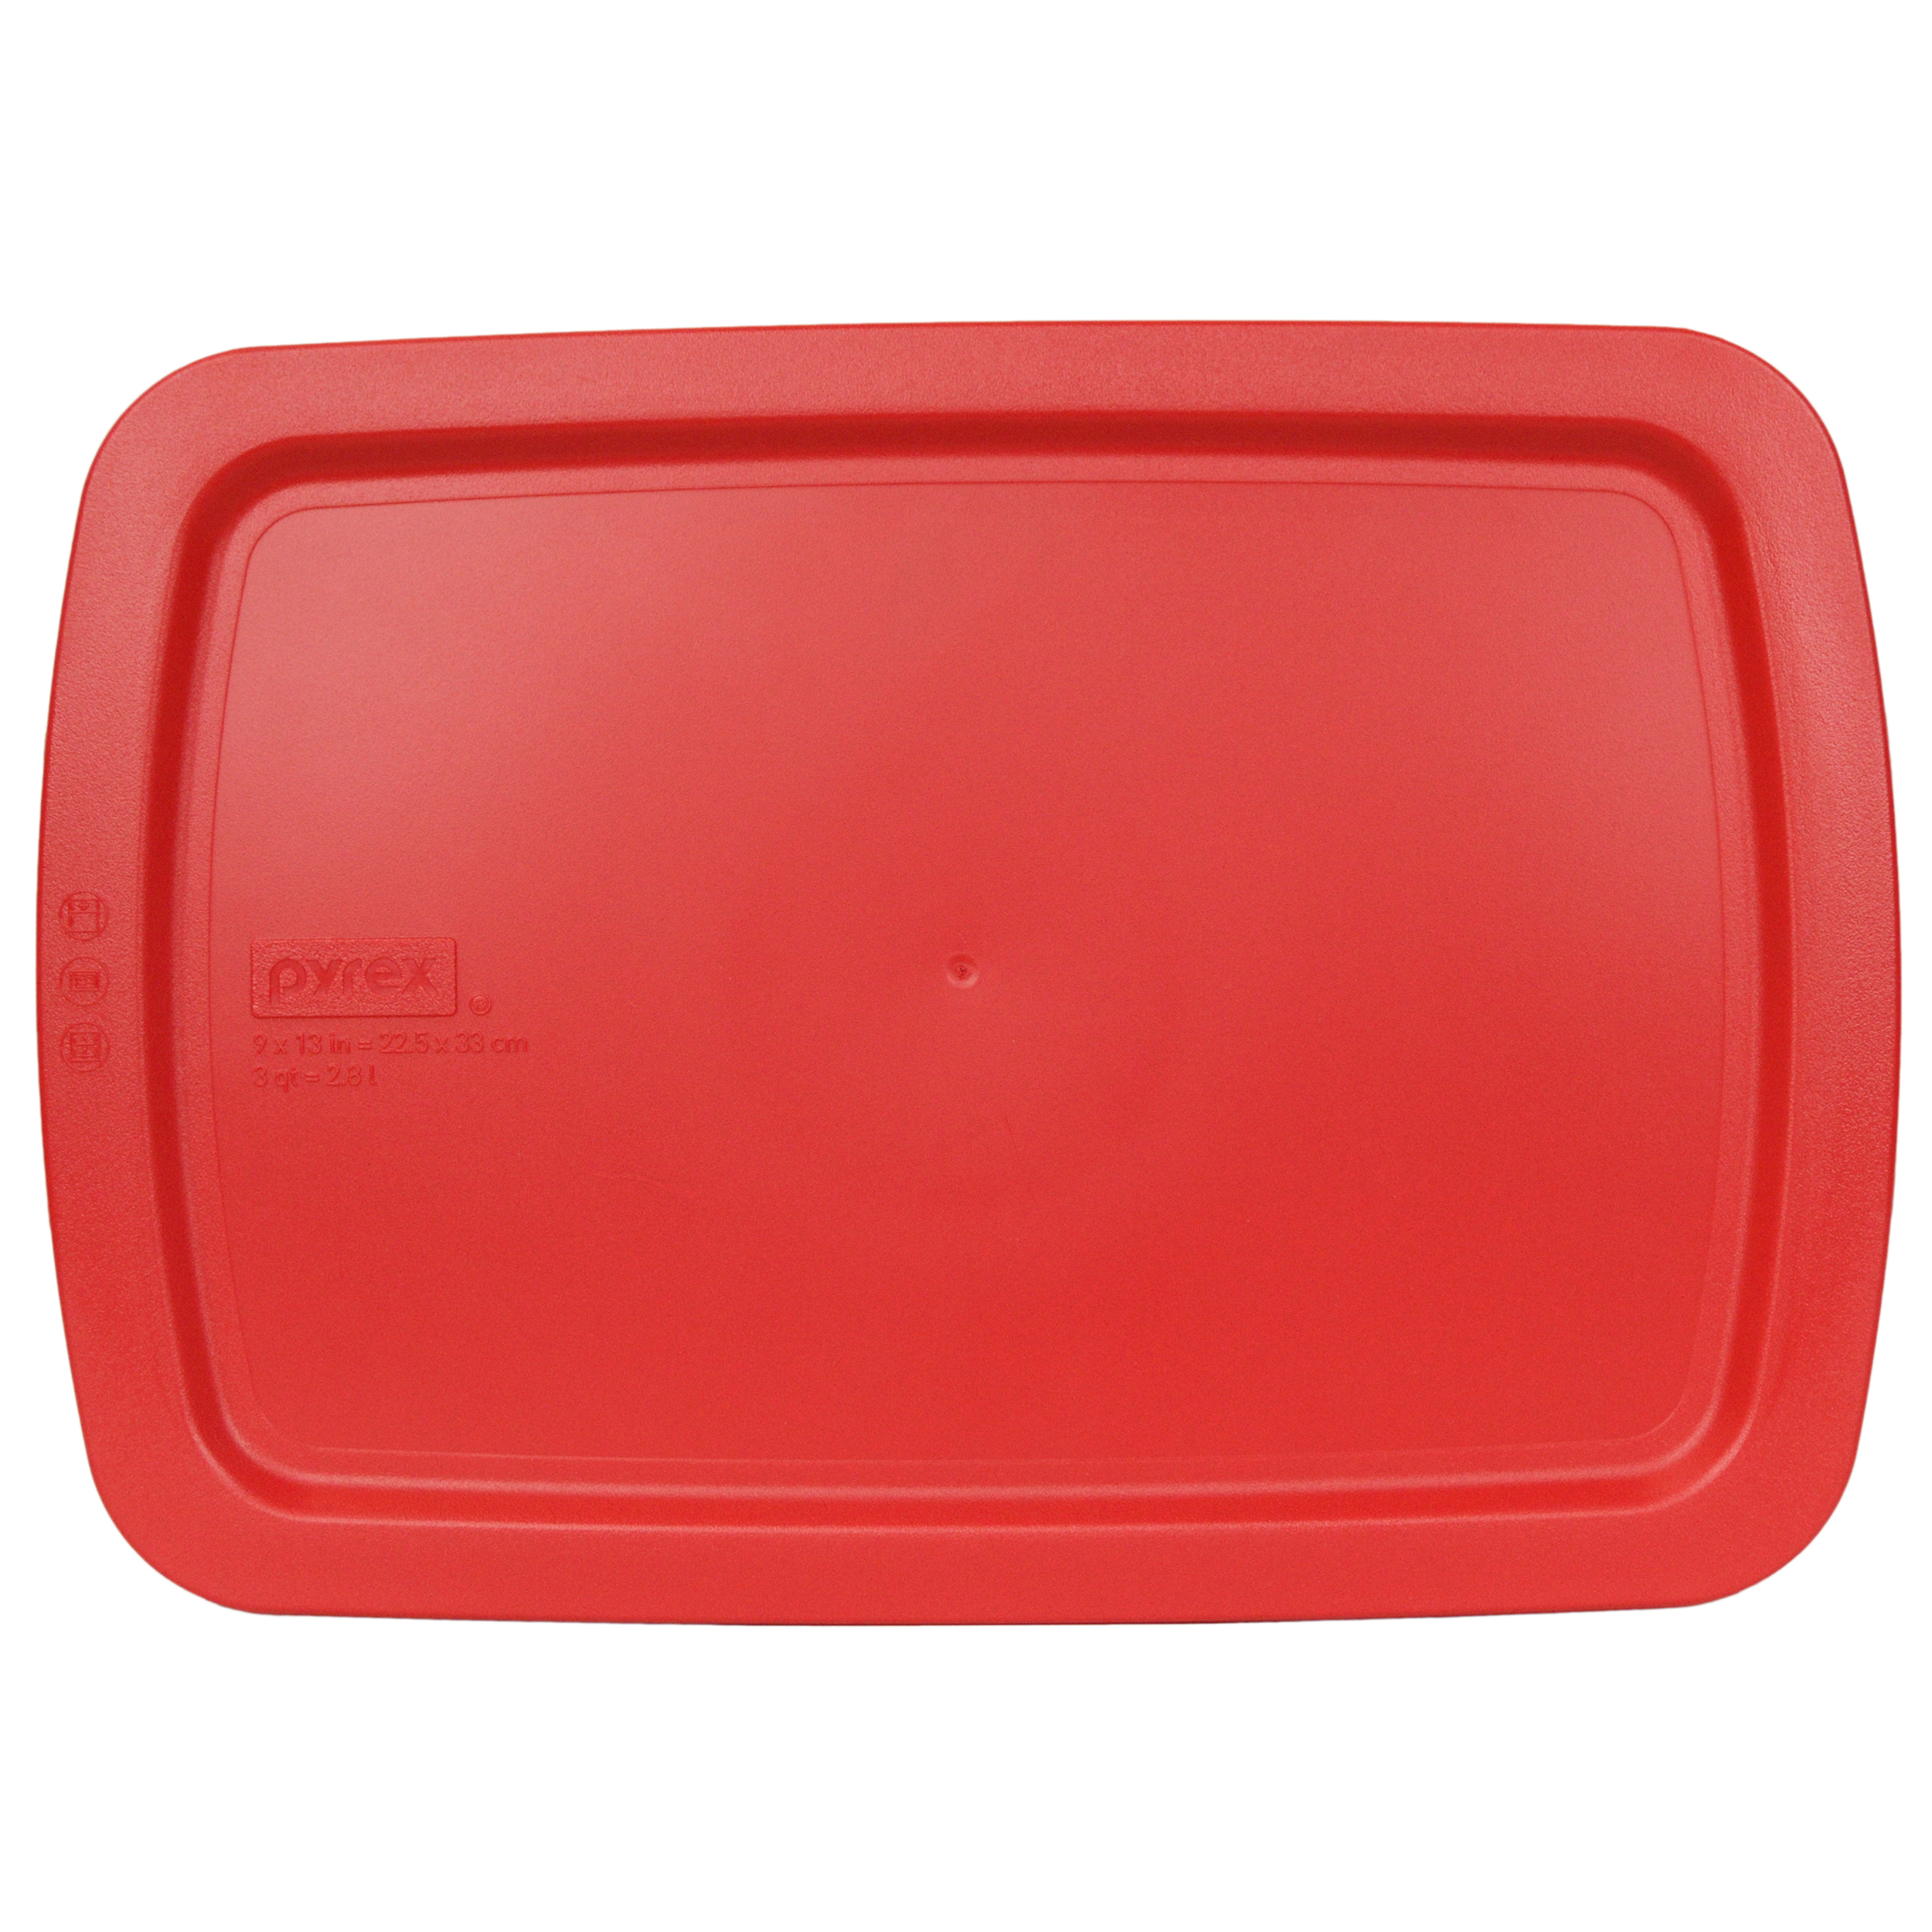 Pyrex Replacement Lid C-233-PC Red Plastic Rectangle Cover for Pyrex C-233 3-Qt Glass Dish (Sold Separately)